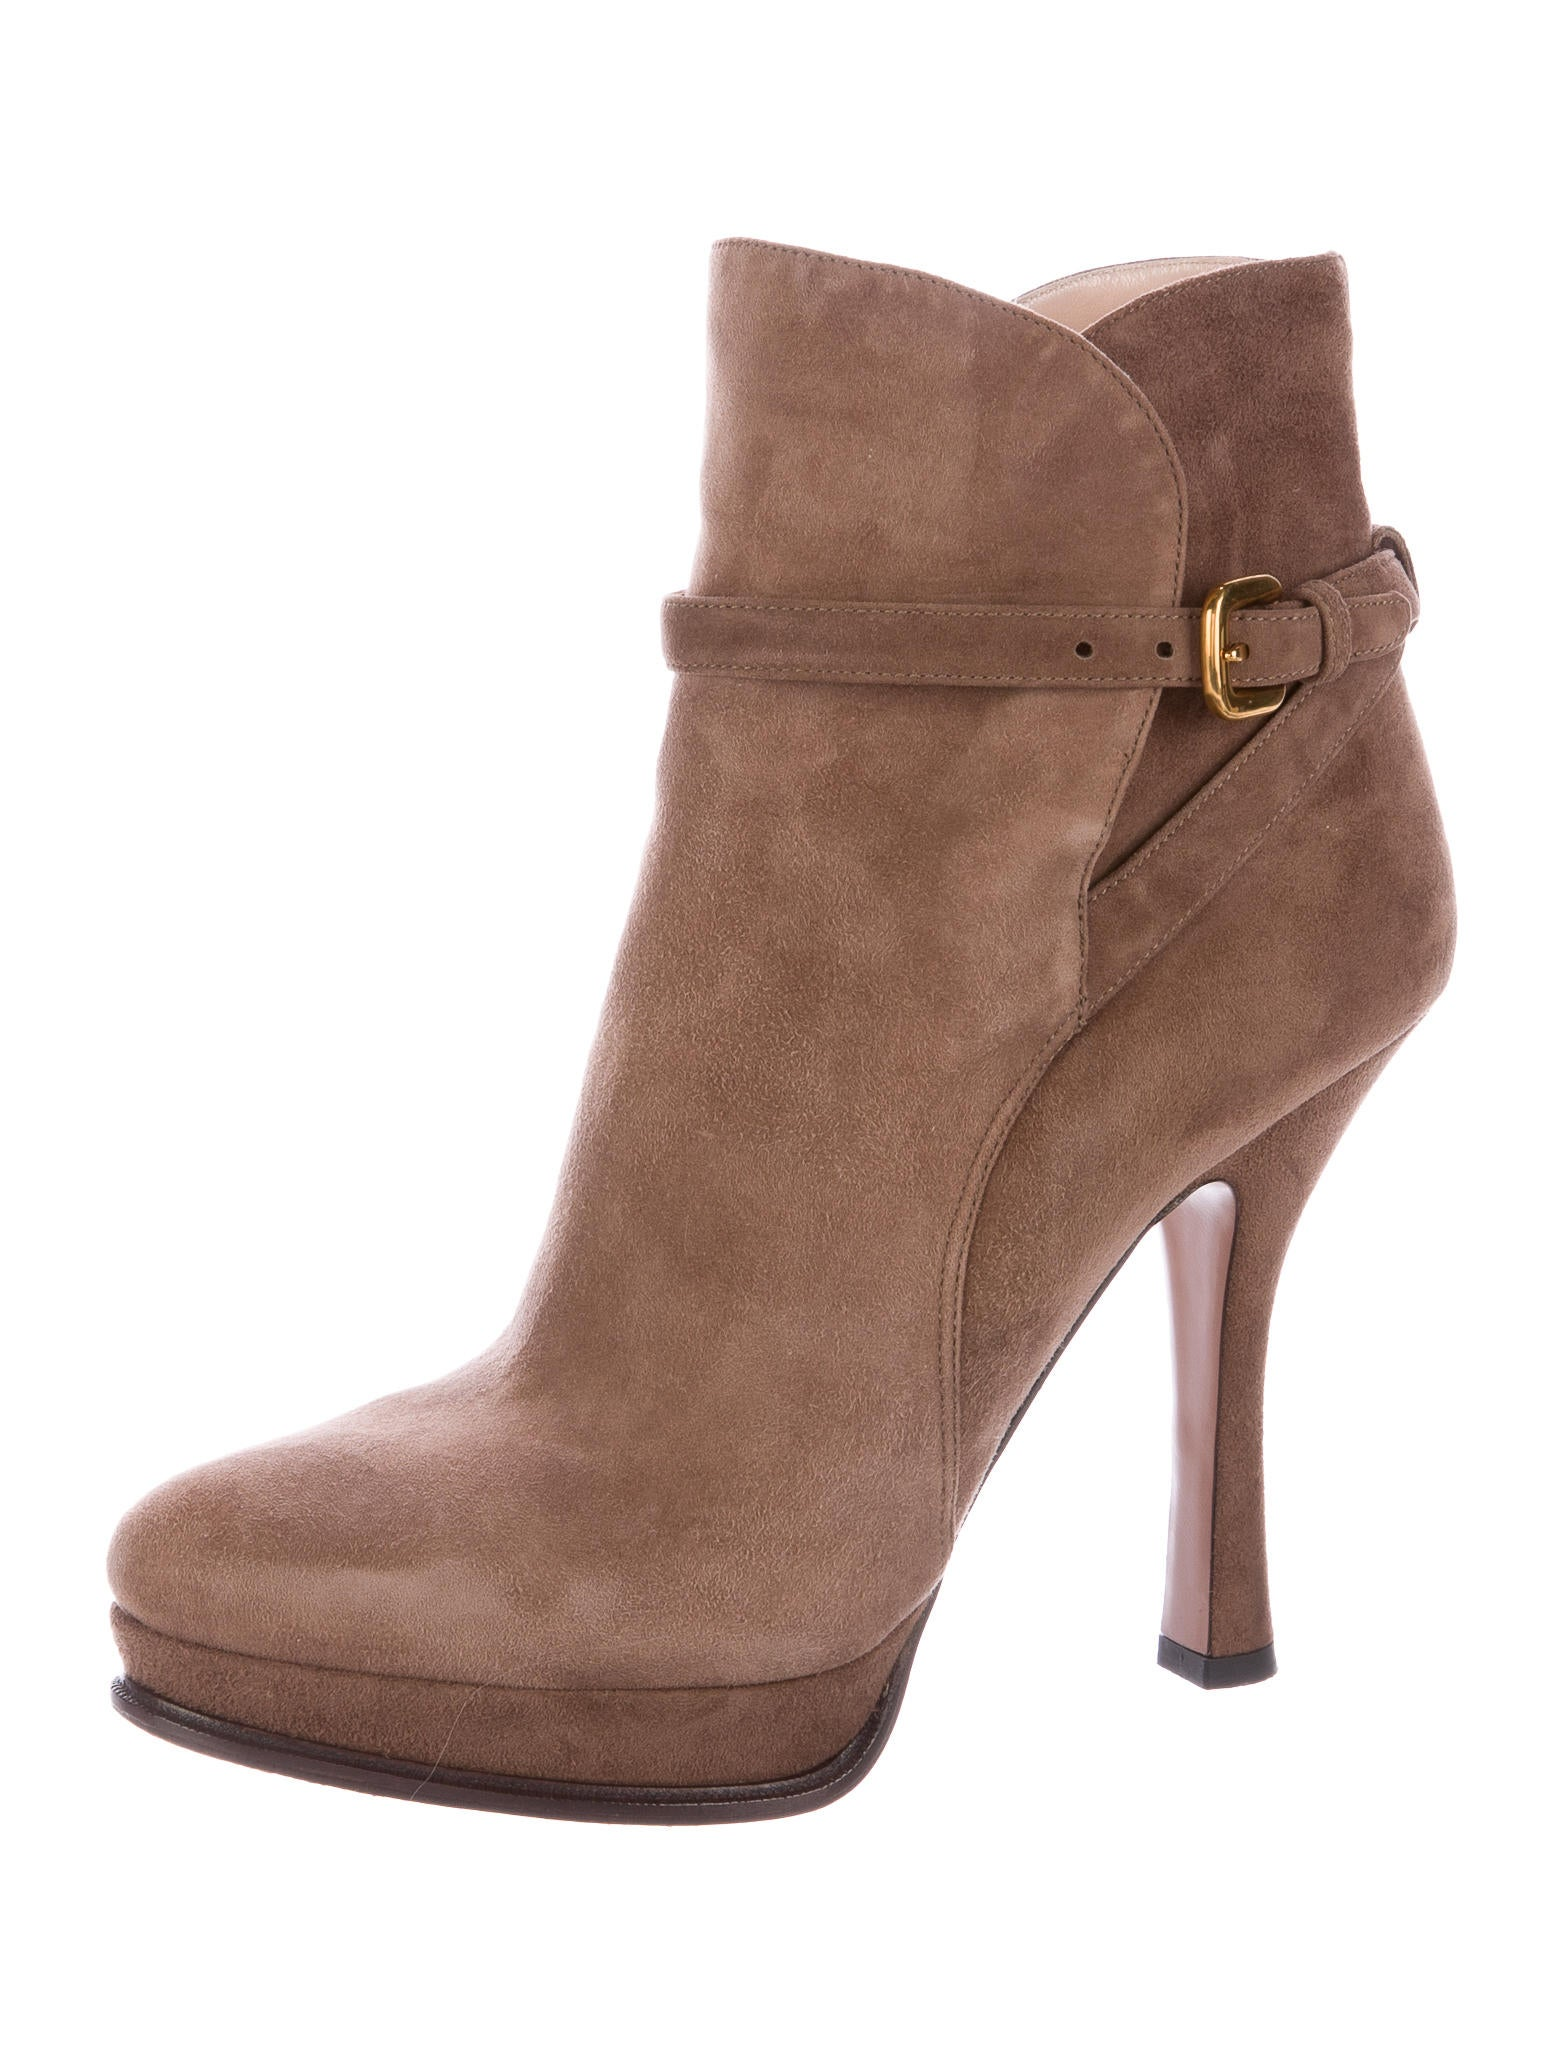 Ankle Boots Women's Boots: Find the latest styles of Shoes from shopnow-ahoqsxpv.ga Your Online Women's Shoes Store! Get 5% in rewards with Club O!